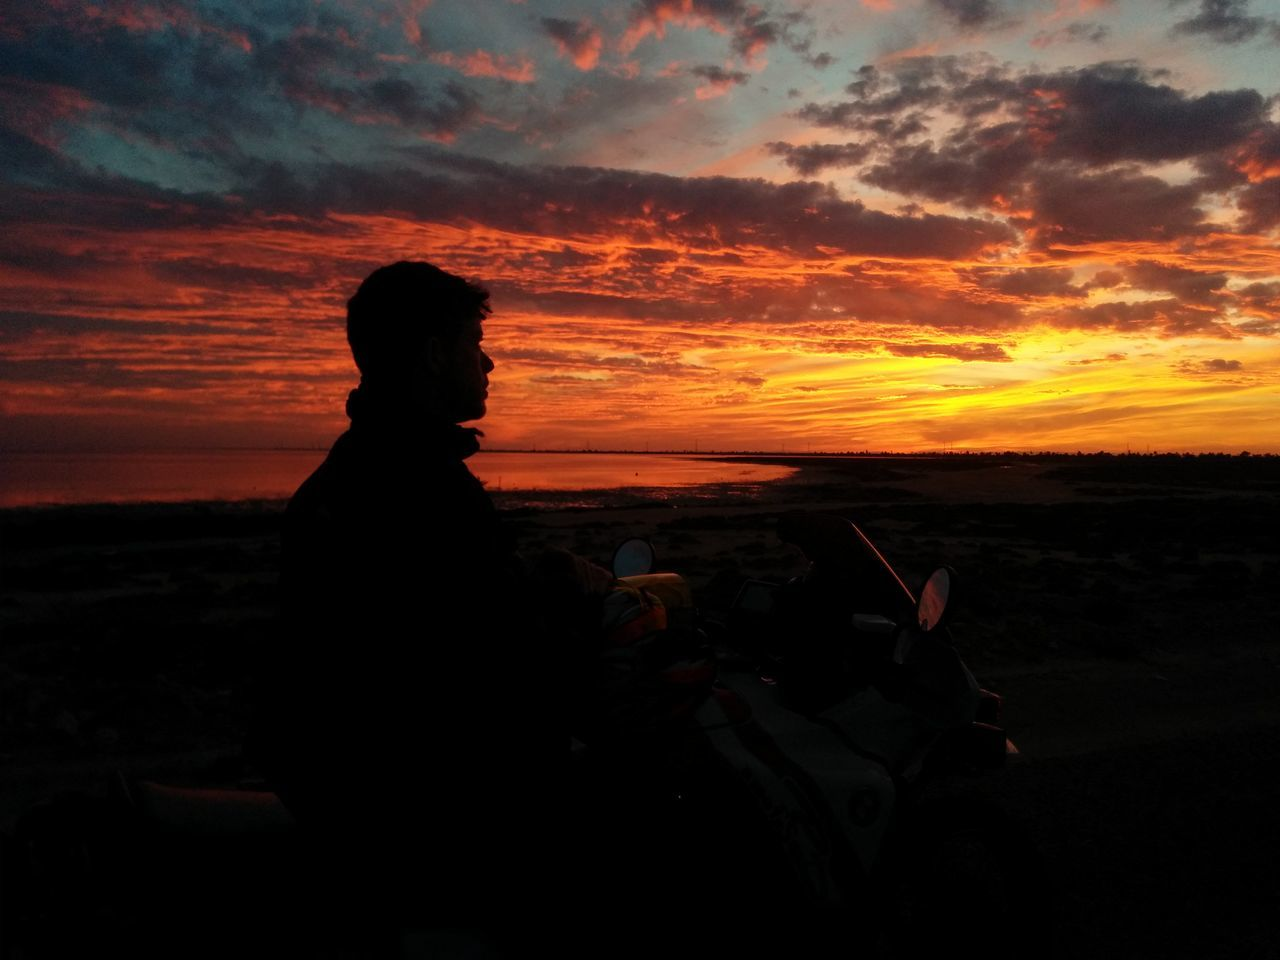 sunset, sky, nature, beauty in nature, scenics, silhouette, cloud - sky, real people, leisure activity, tranquility, one person, sitting, lifestyles, beach, outdoors, vacations, women, people